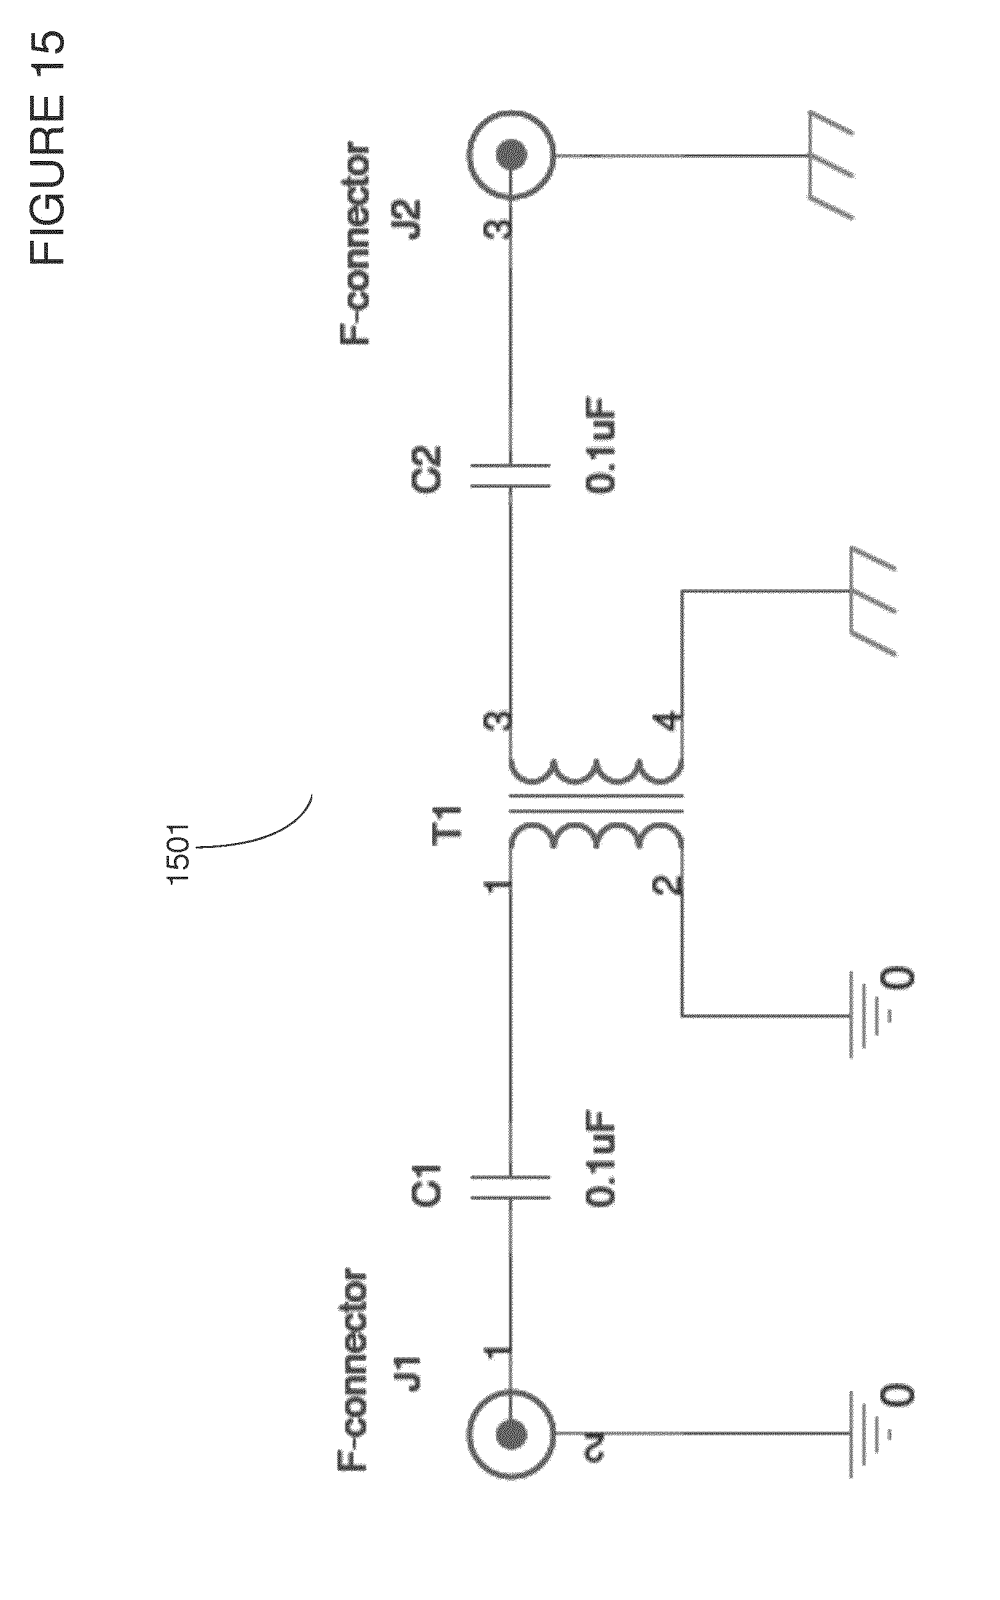 medium resolution of patent us20110248801 ground loop isolator for a coaxial cable